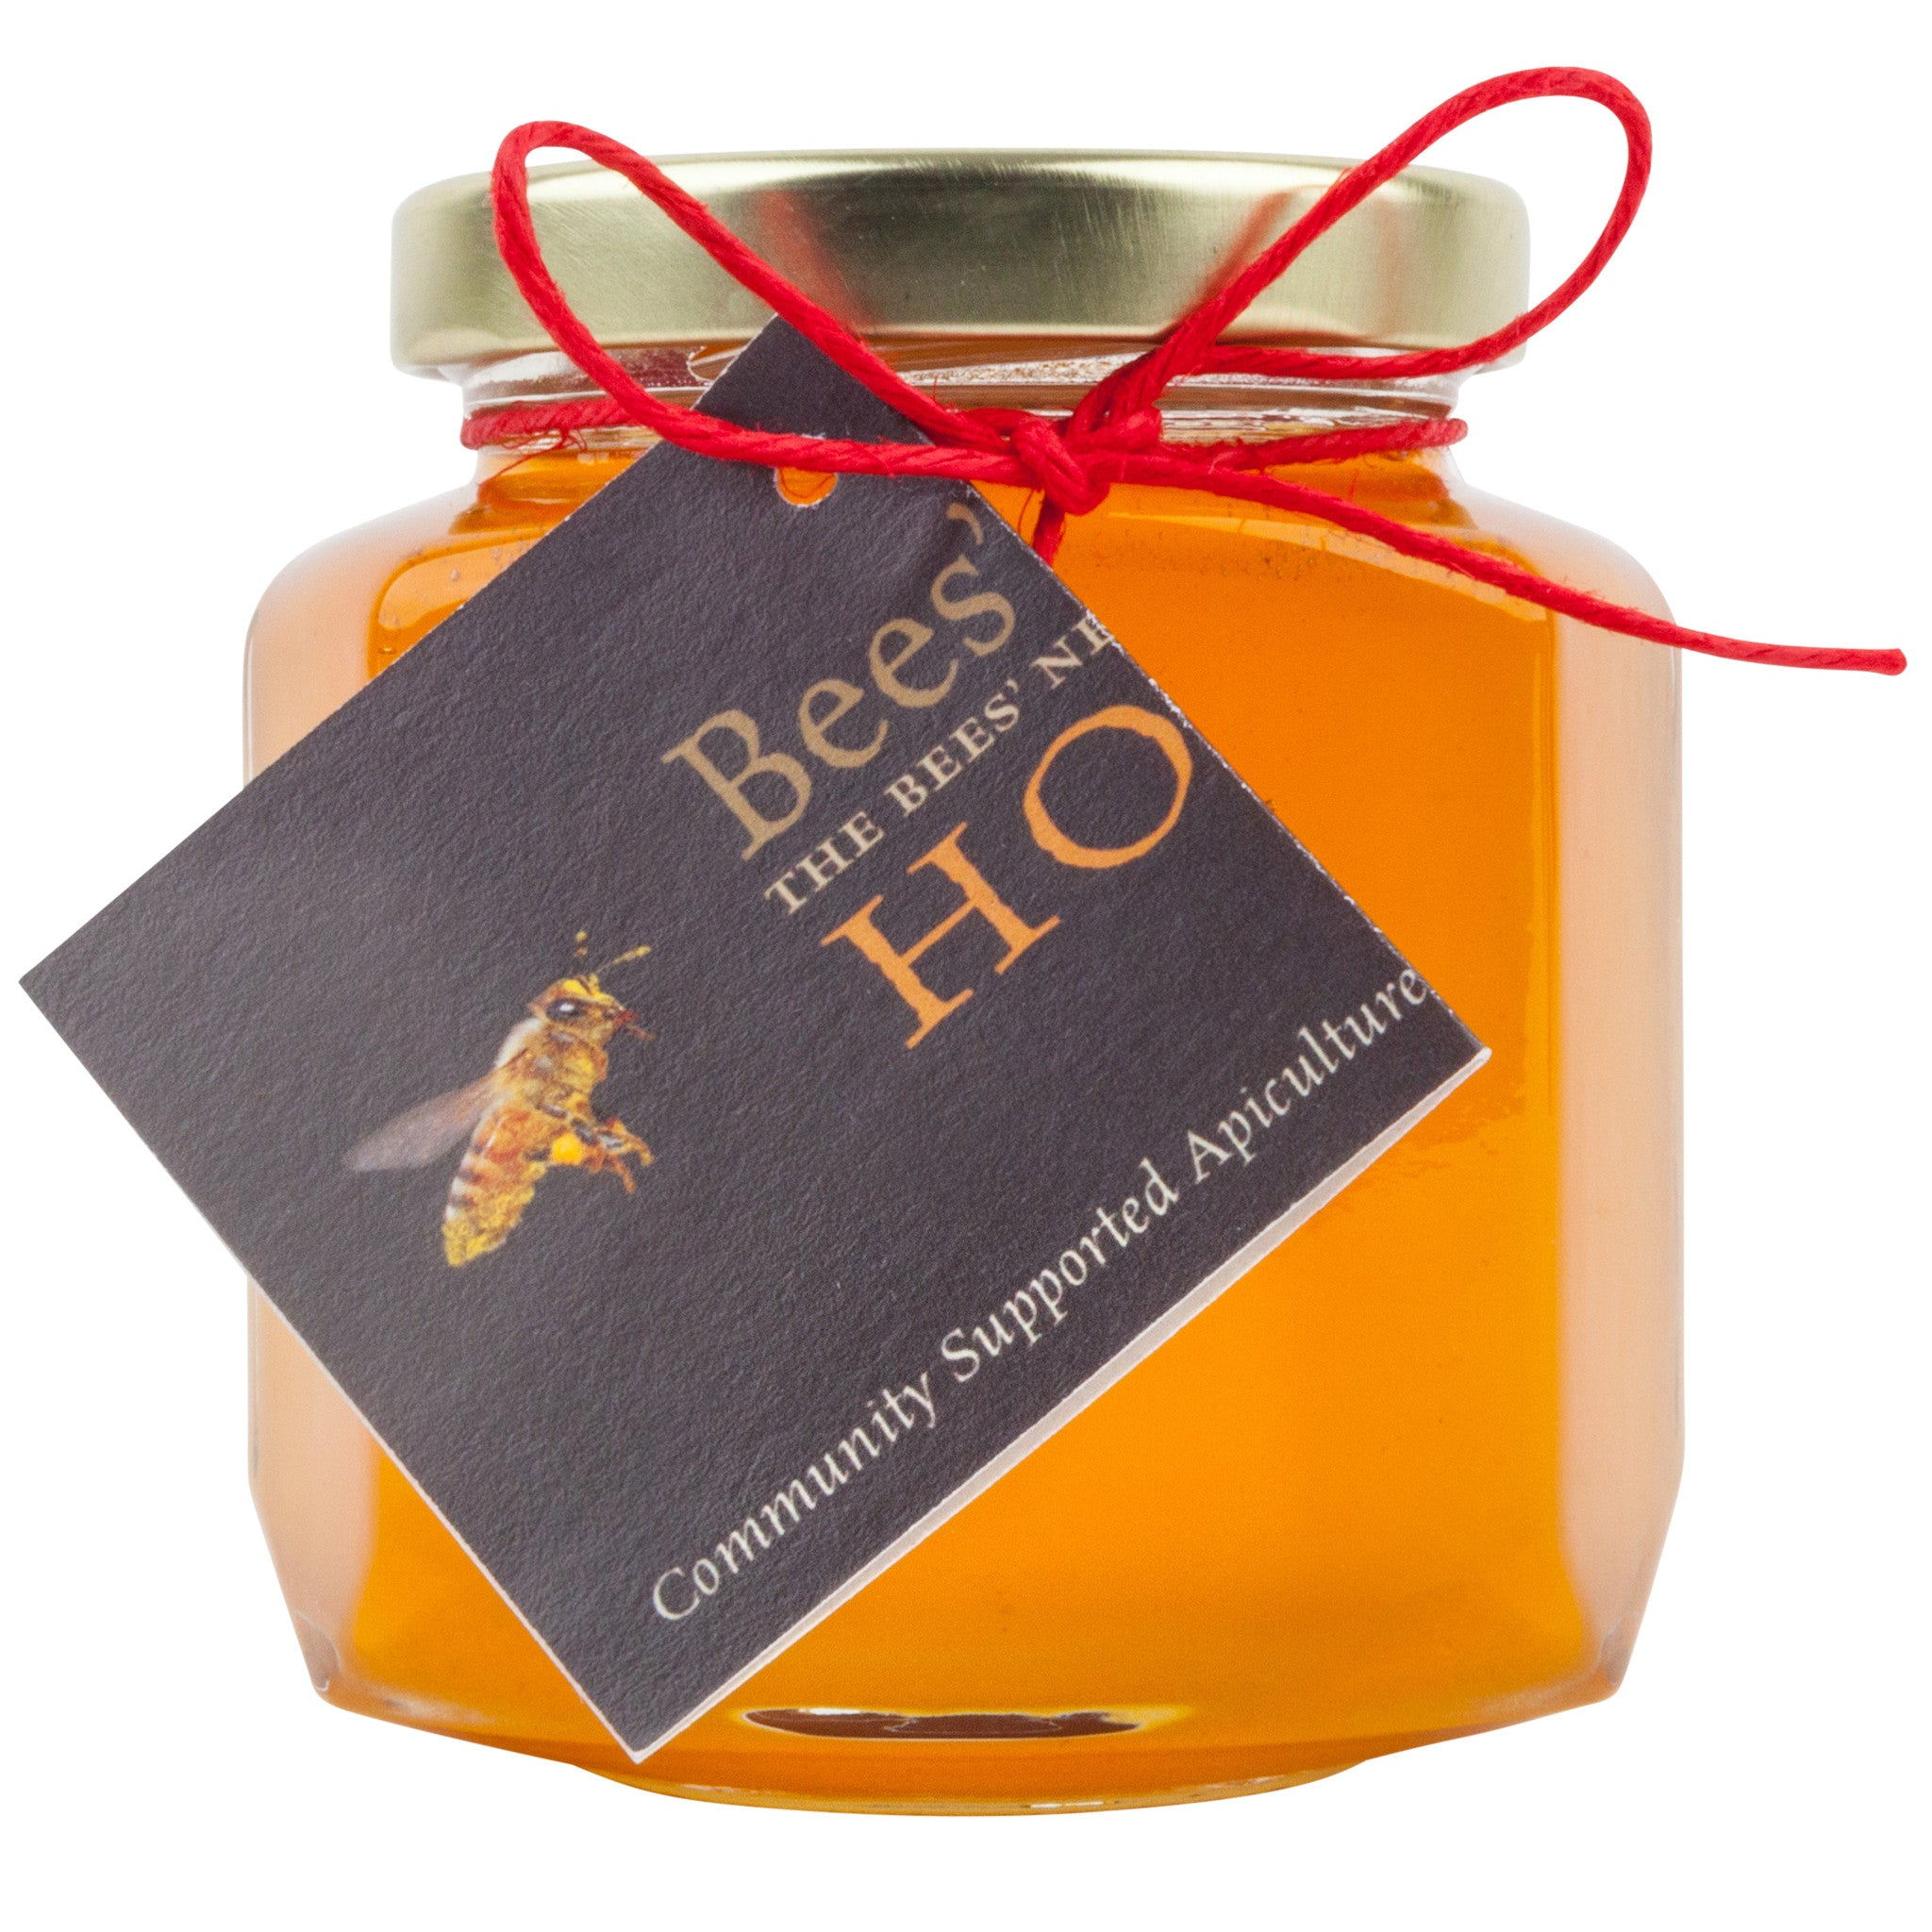 Bees' Needs Early Summer Sag Harbor Honey